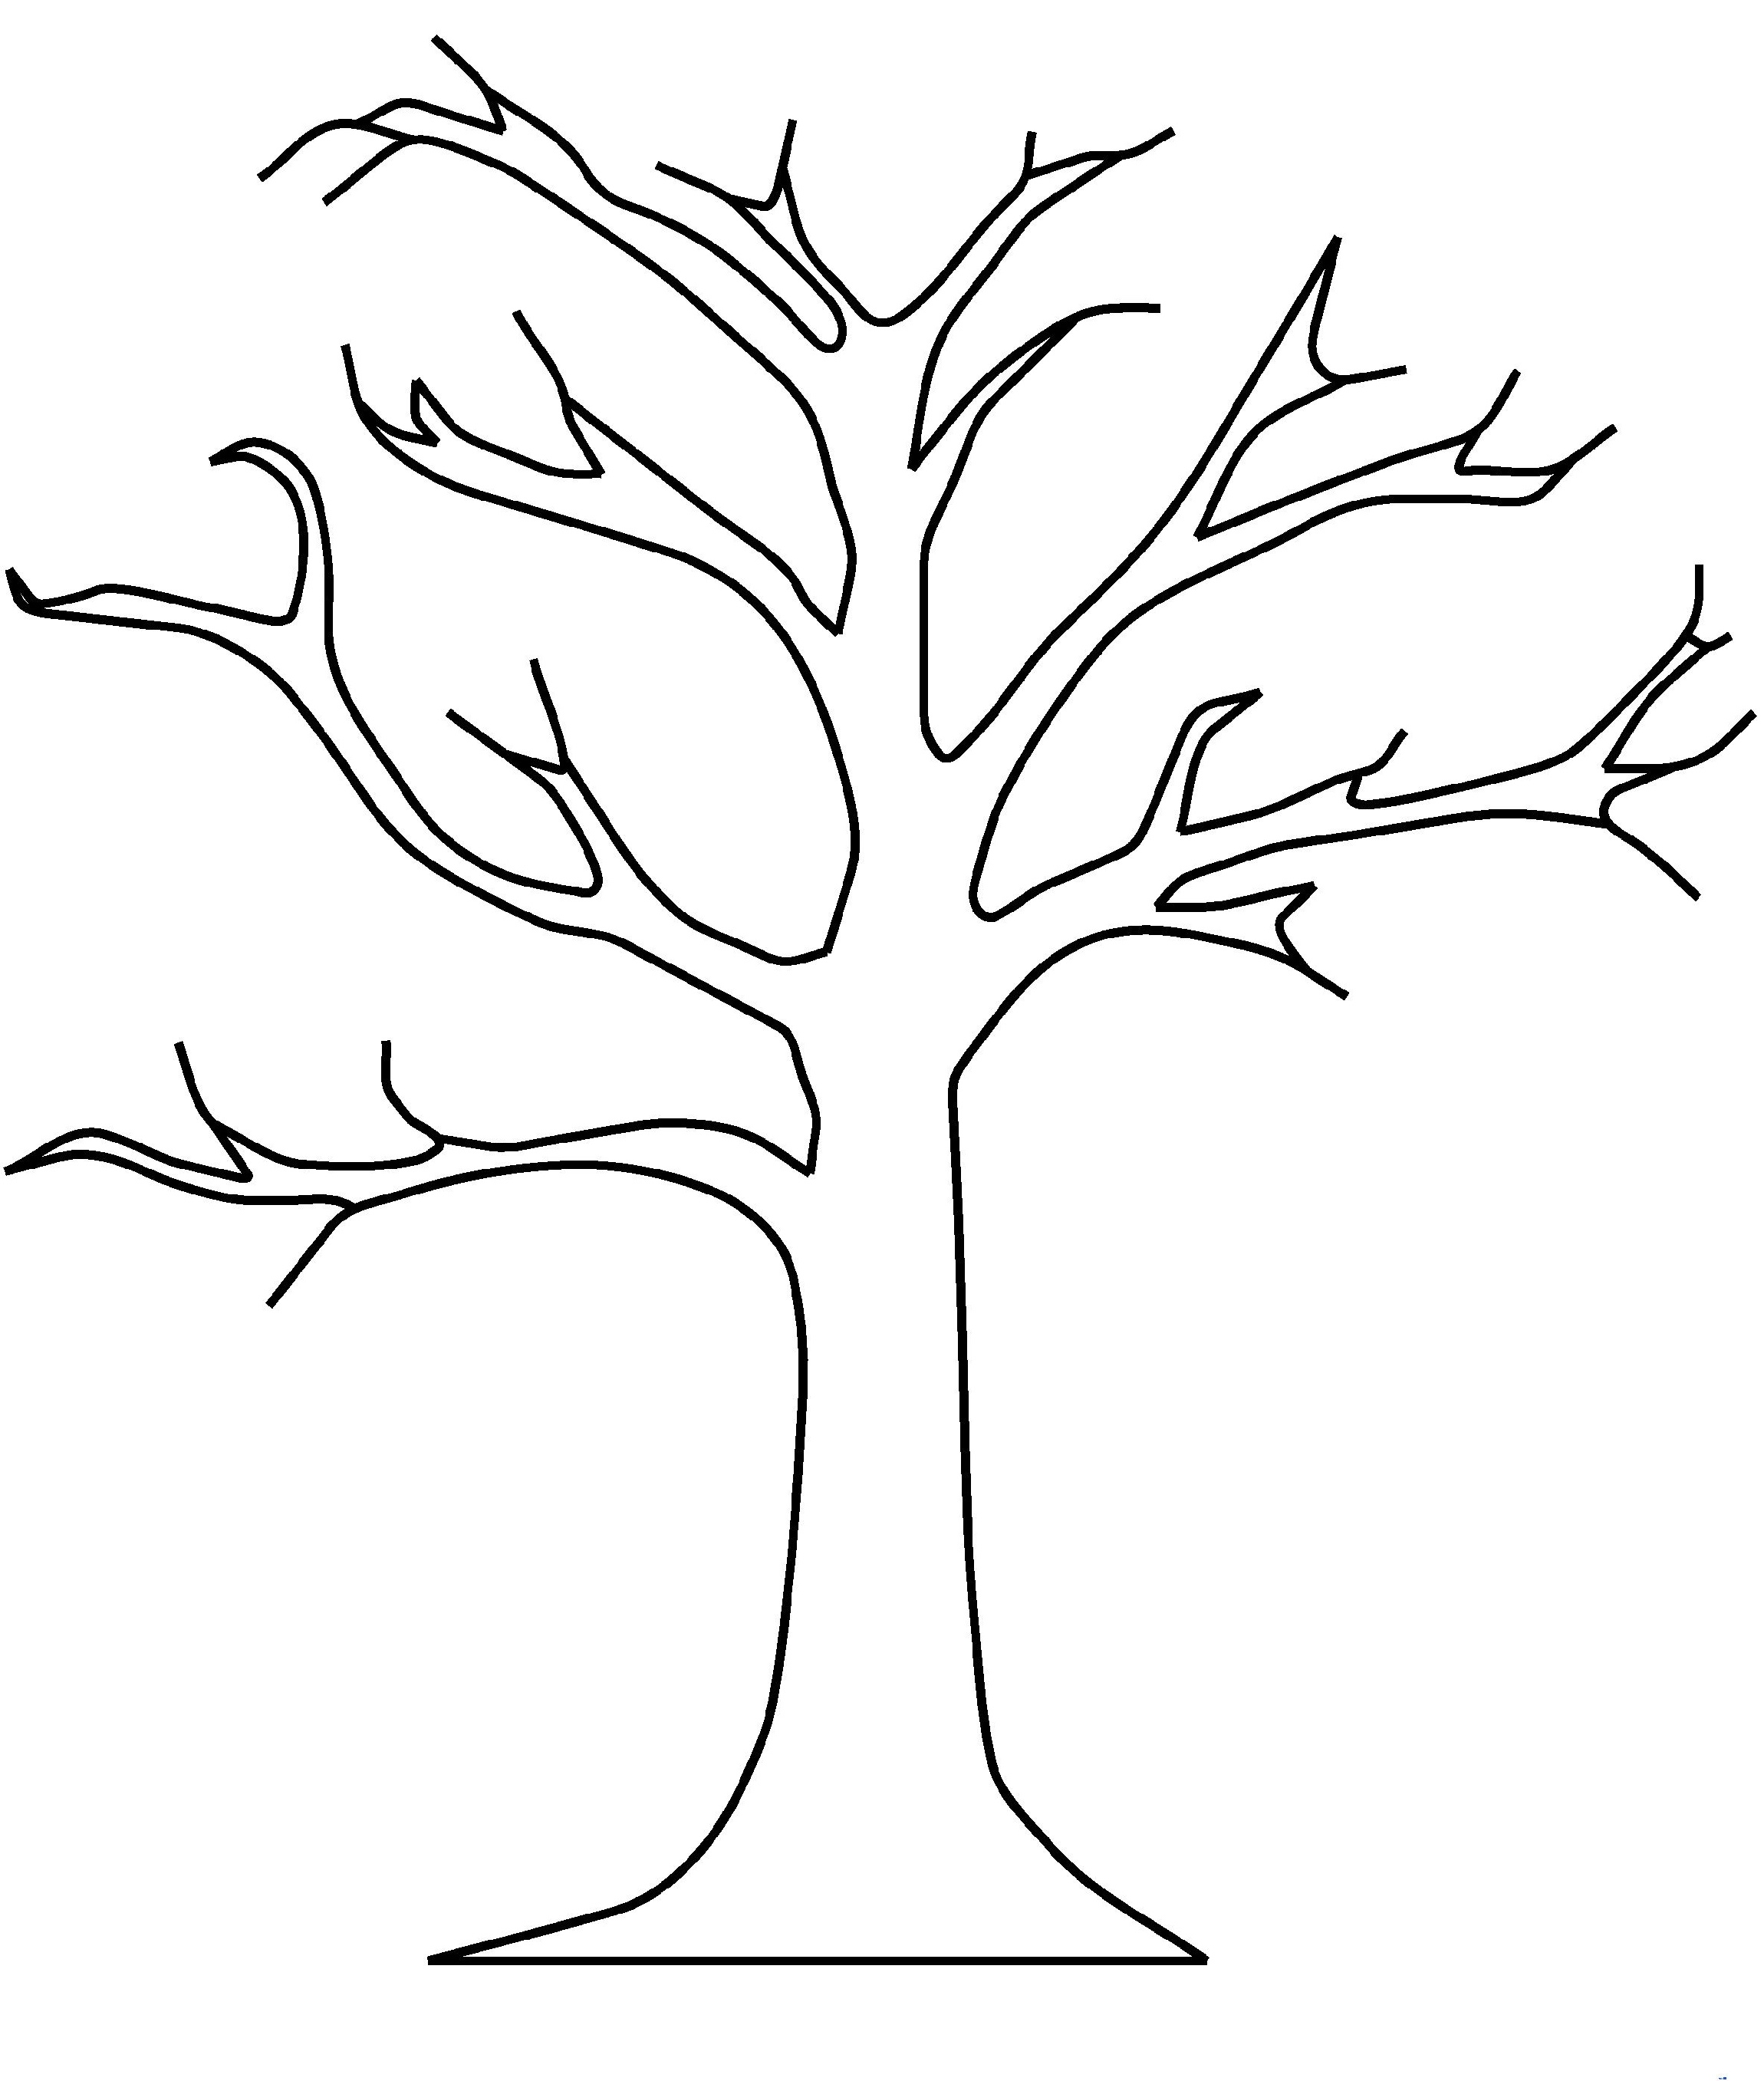 Bare Tree Coloring Page For Kids